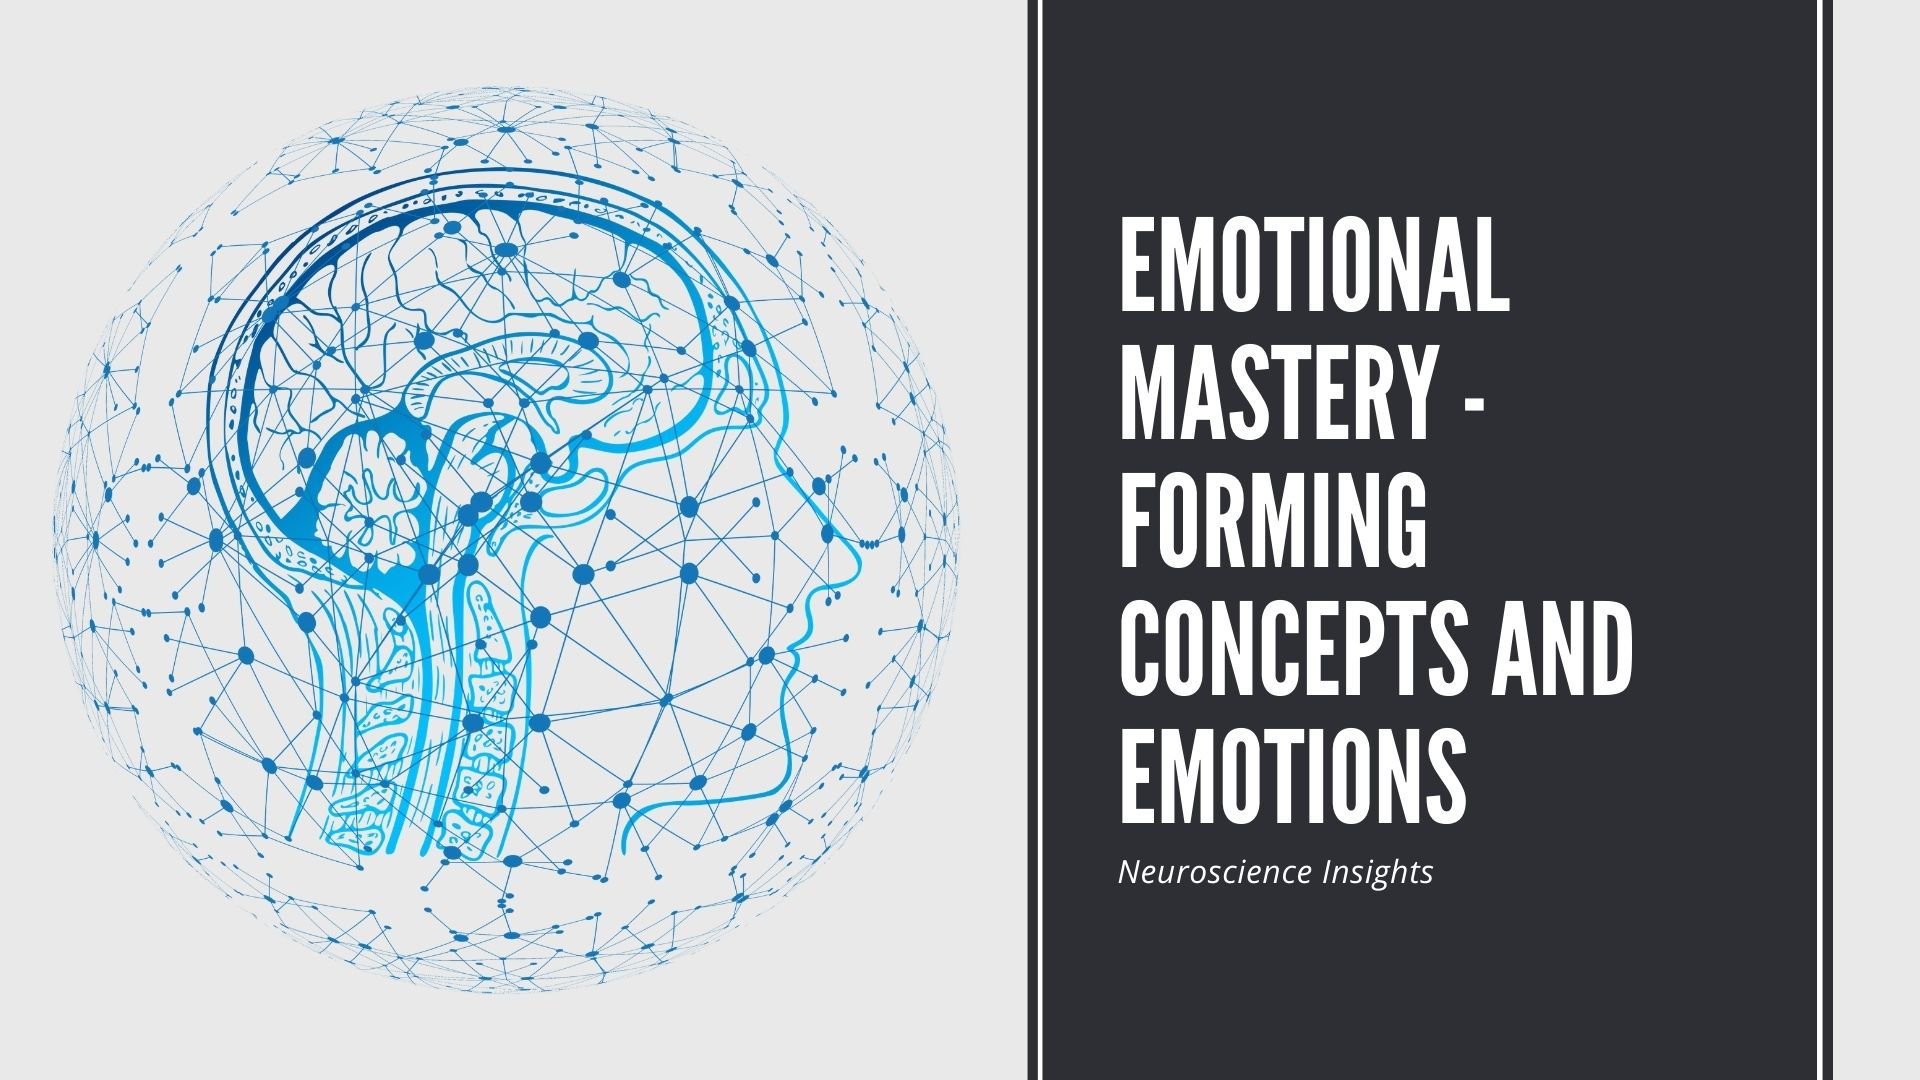 Emotional Mastery | Forming Concepts and Emotions